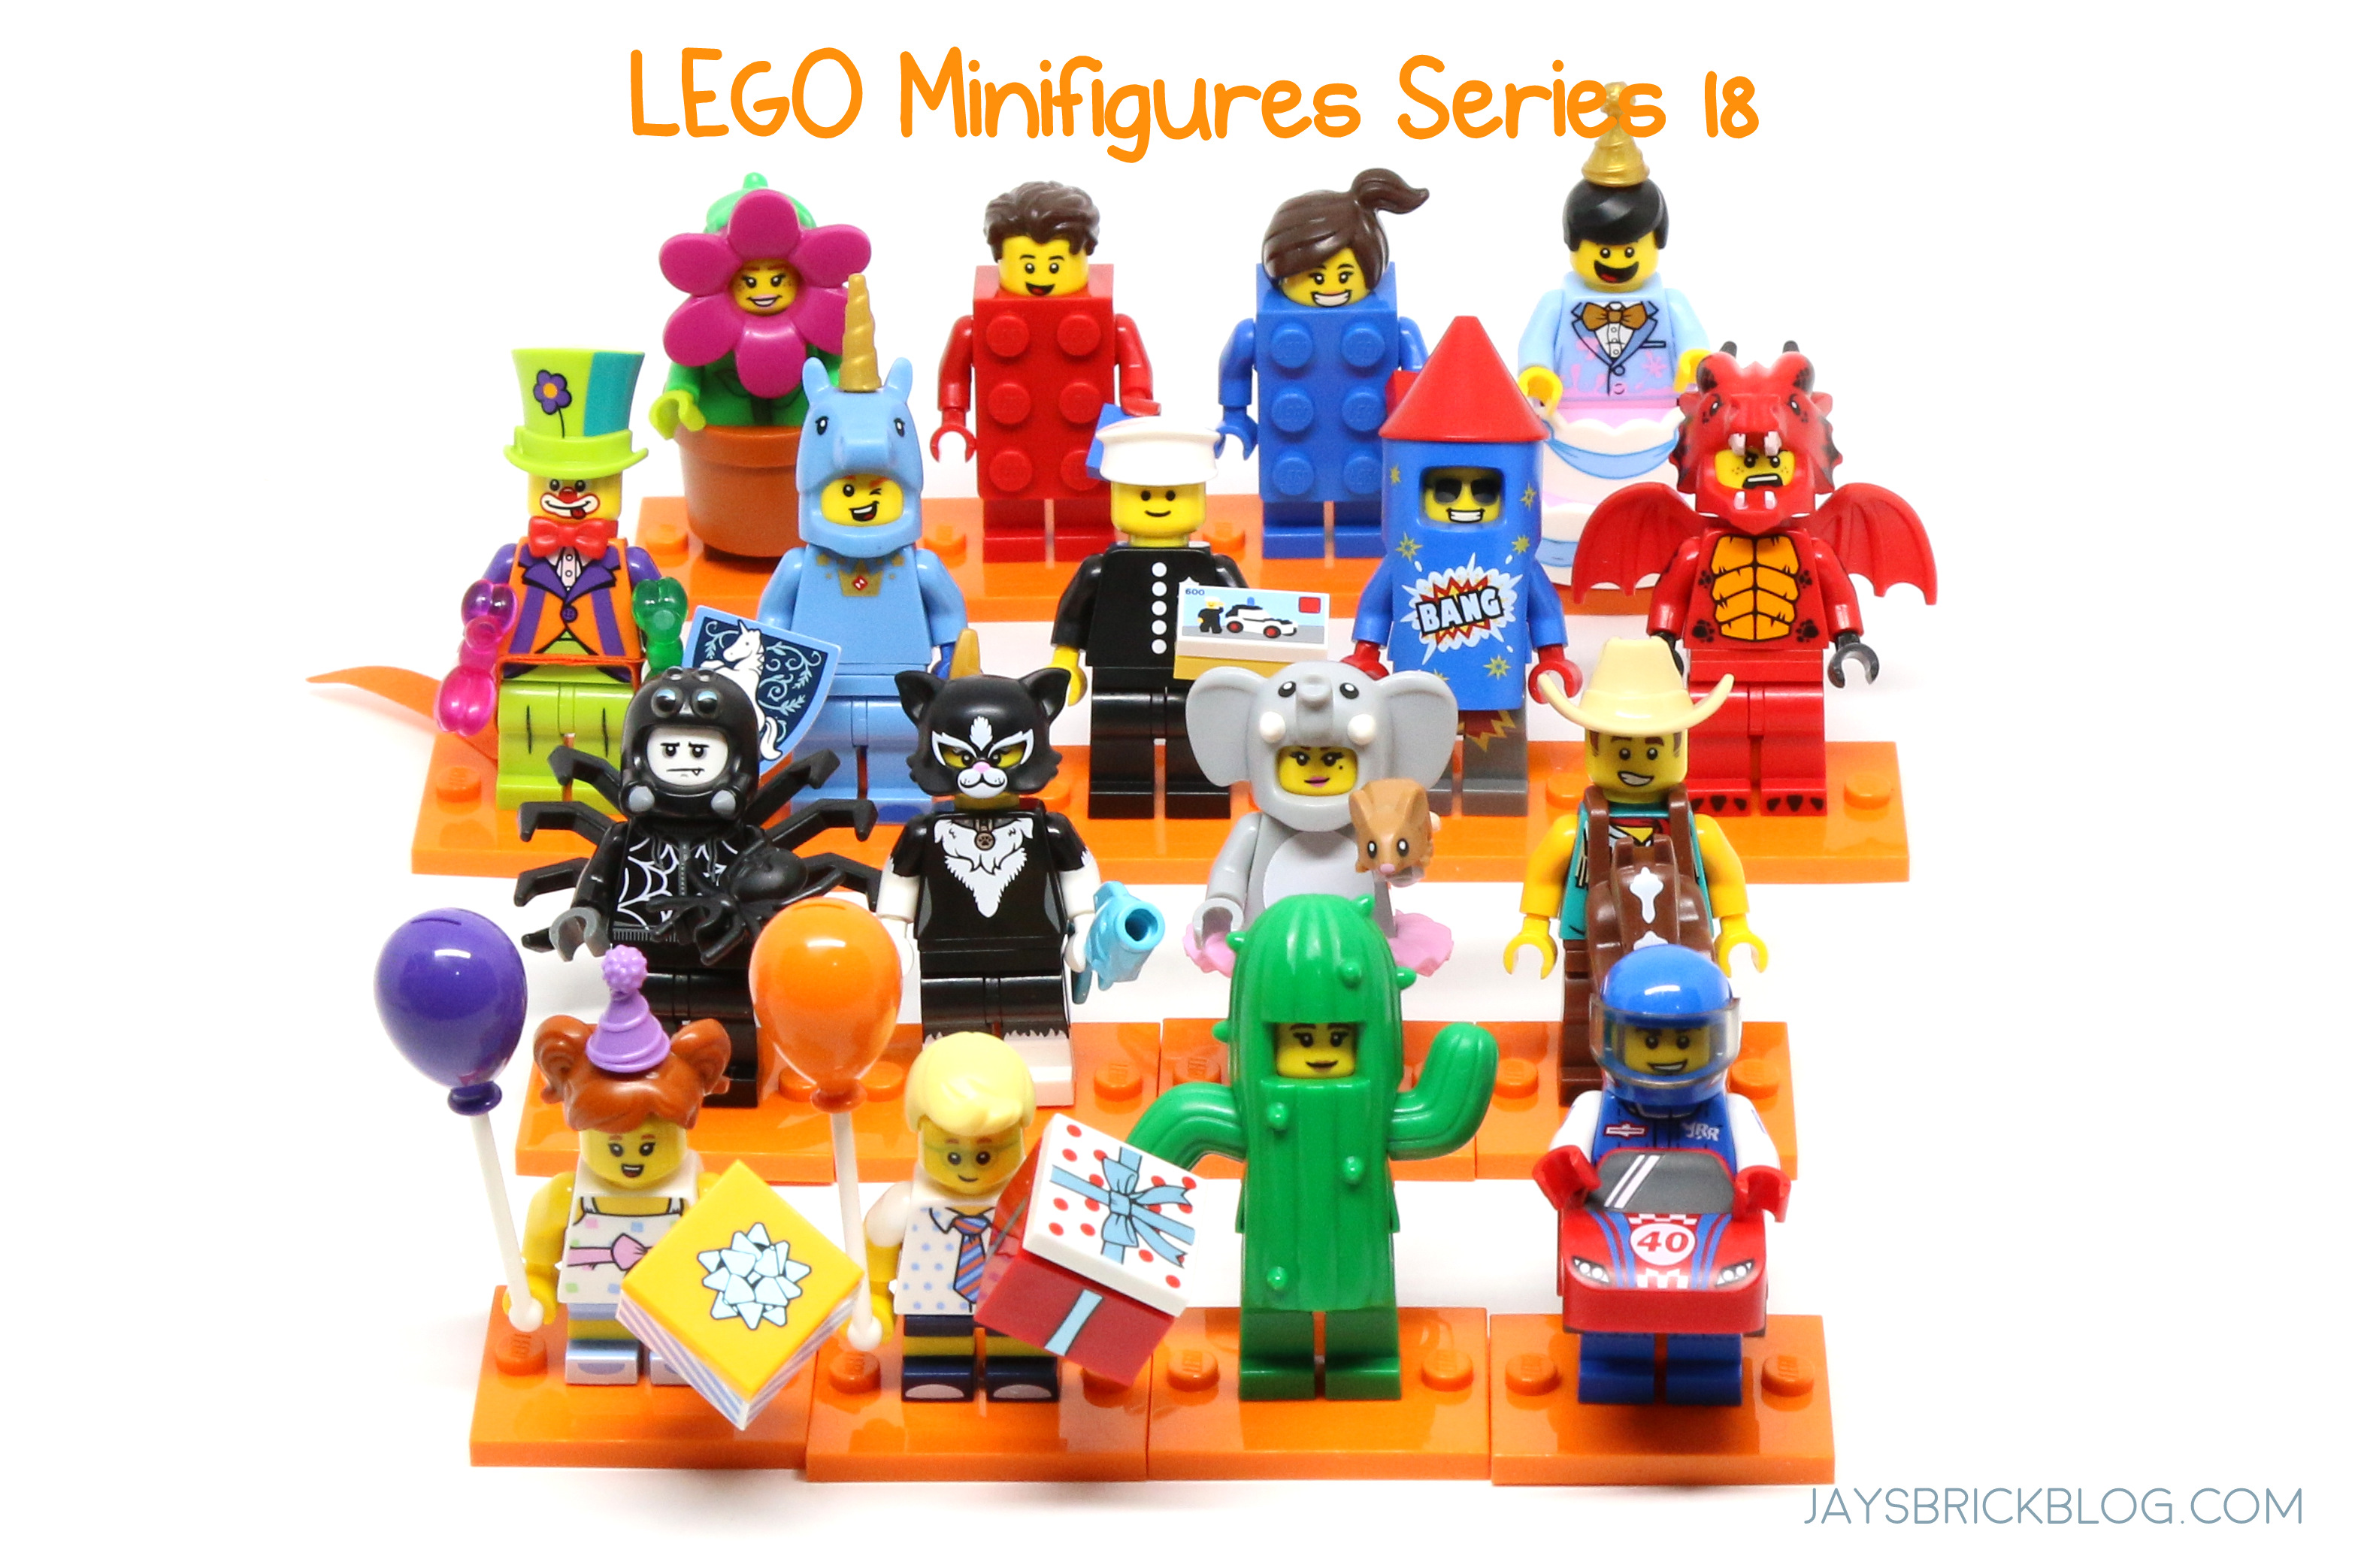 Review: LEGO Minifigures Series 18 – Jay's Brick Blog